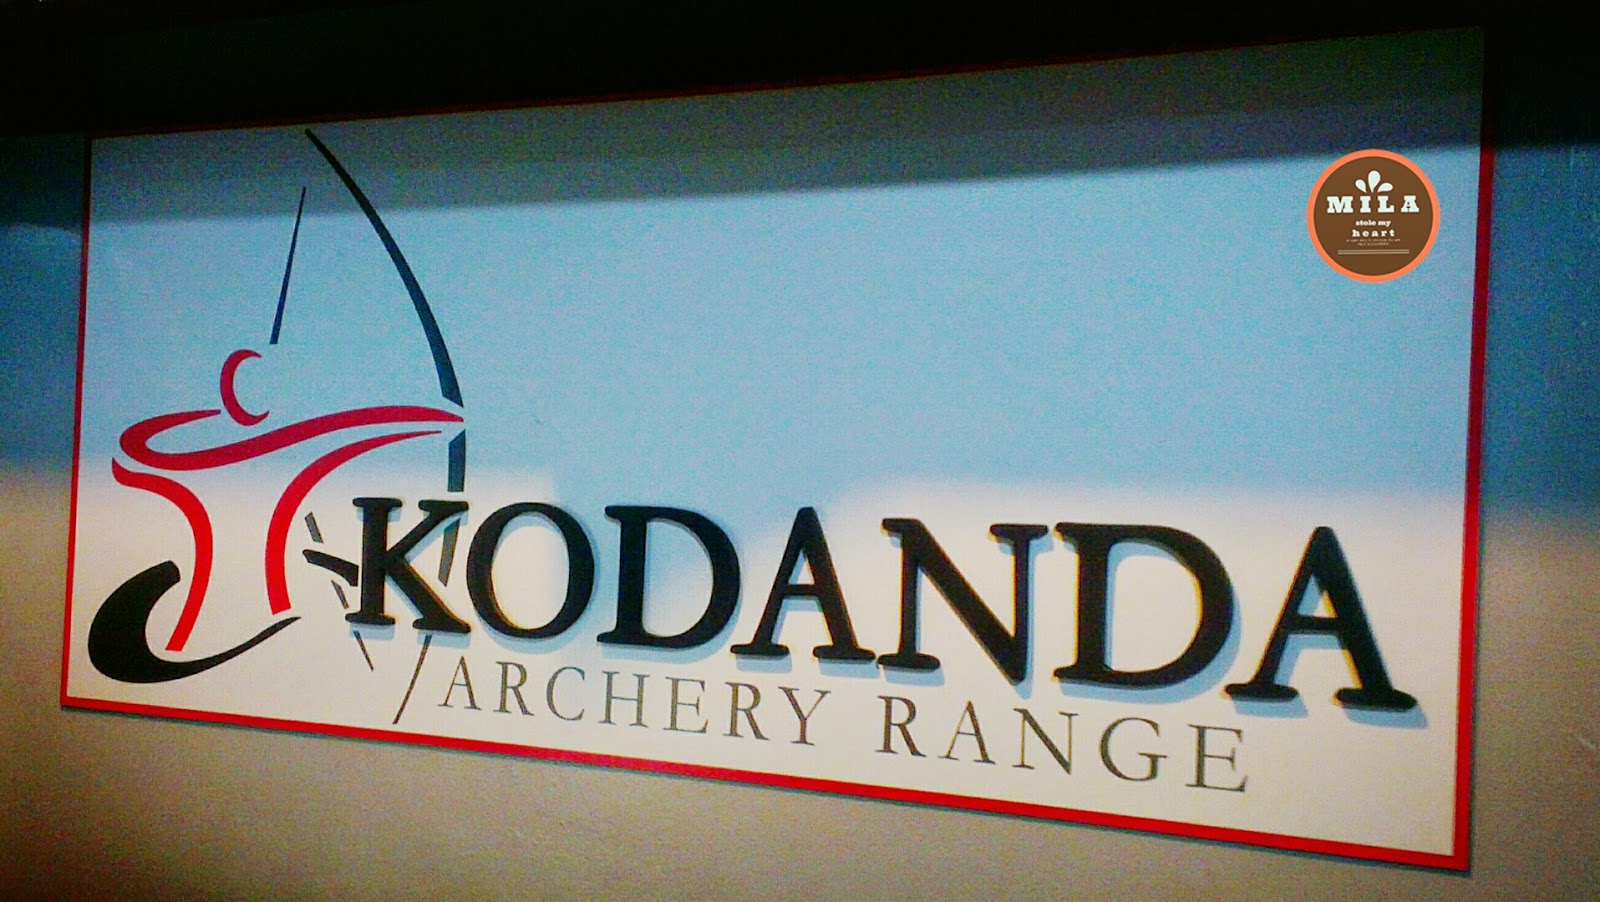 Kodanda Archery Range Sign